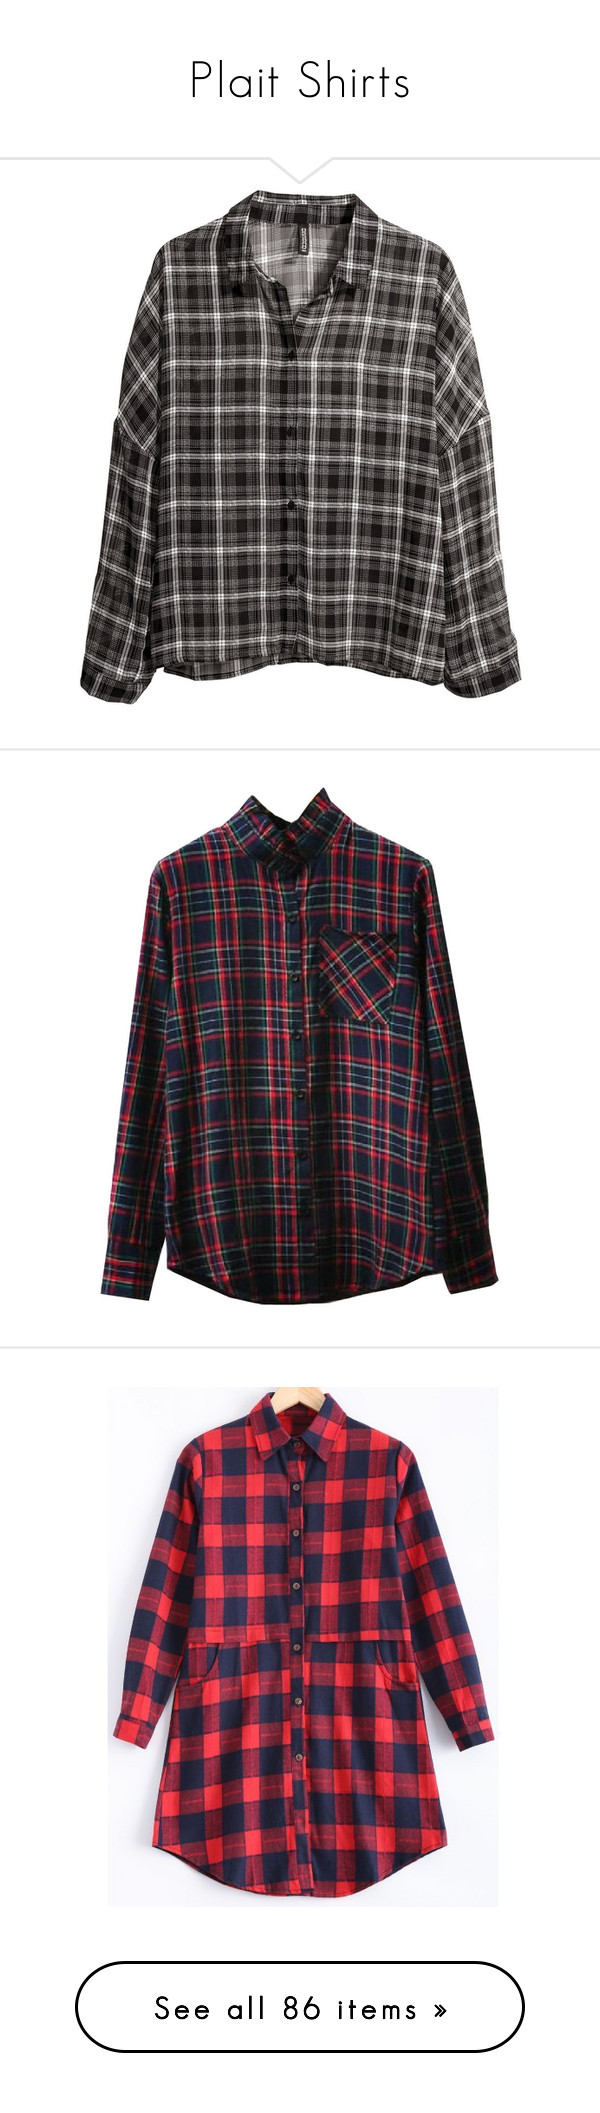 """""""Plait Shirts"""" by janjanzira-1 ❤ liked on Polyvore featuring tops, blouses, shirts, flannels, black, flannel shirts, extra long sleeve shirts, pattern shirt, pattern blouses and long-sleeve shirt"""